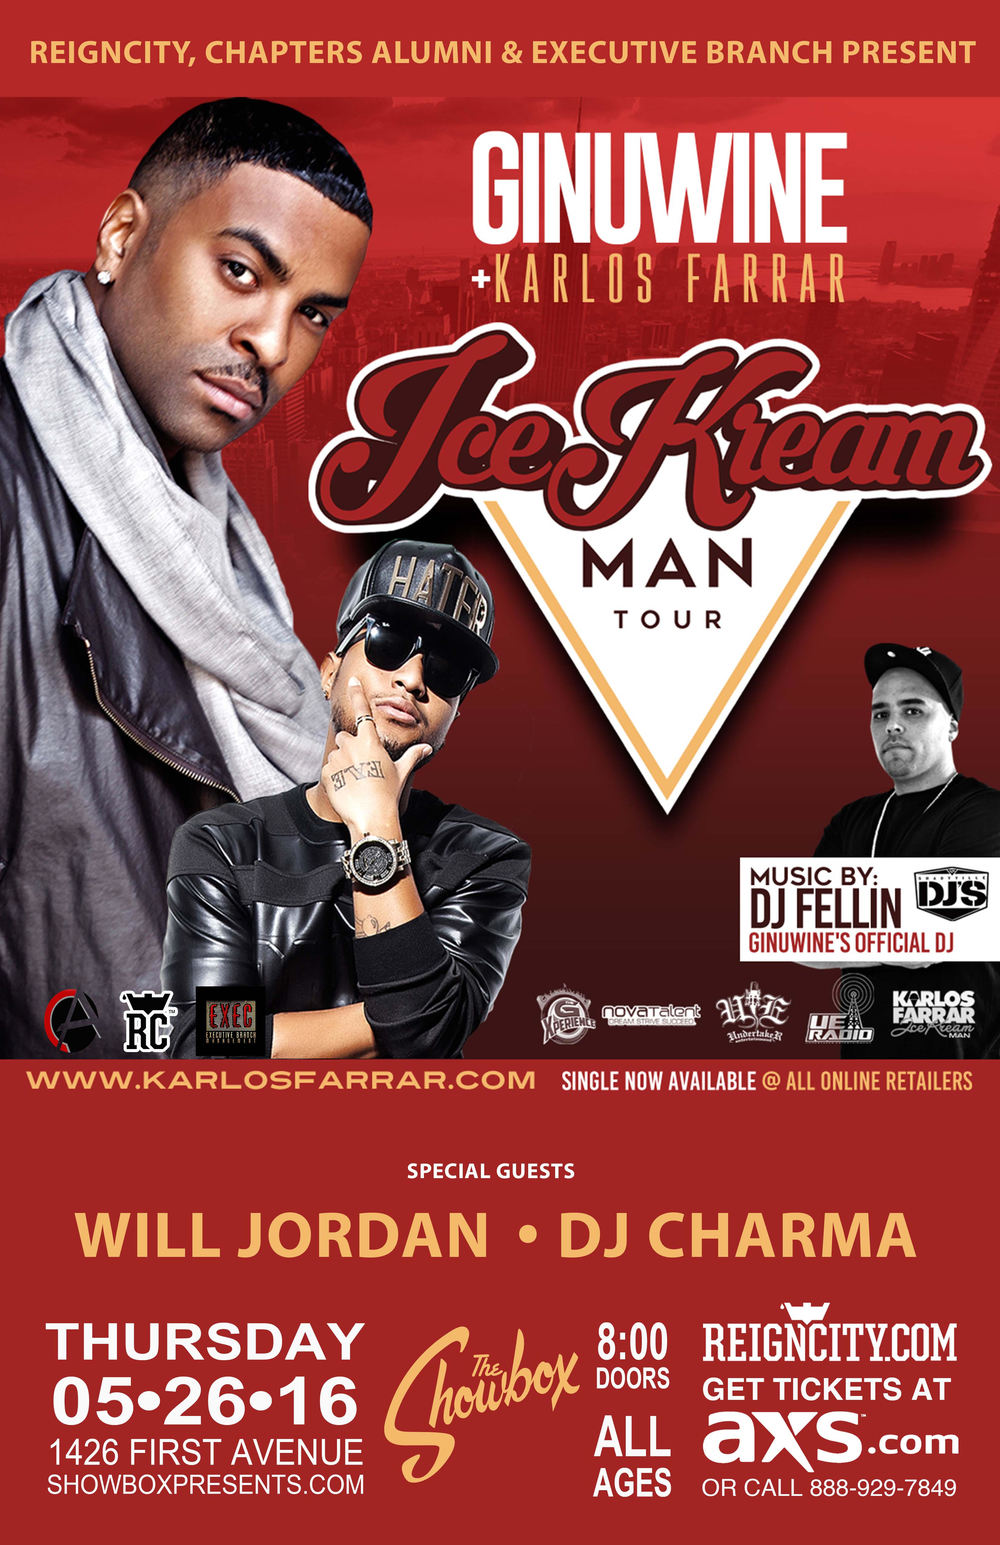 ReignCity, Chapters Alumni & Executive Branch present: Ice Kream Man Tour Feat: GINUWINE KARLOS FARRAR Will Jordan Dj Charma 8pm Doors | 9pm Show $30 ADV / $35 DOS All-Ages + Bar w/ I.D. At The Showbox